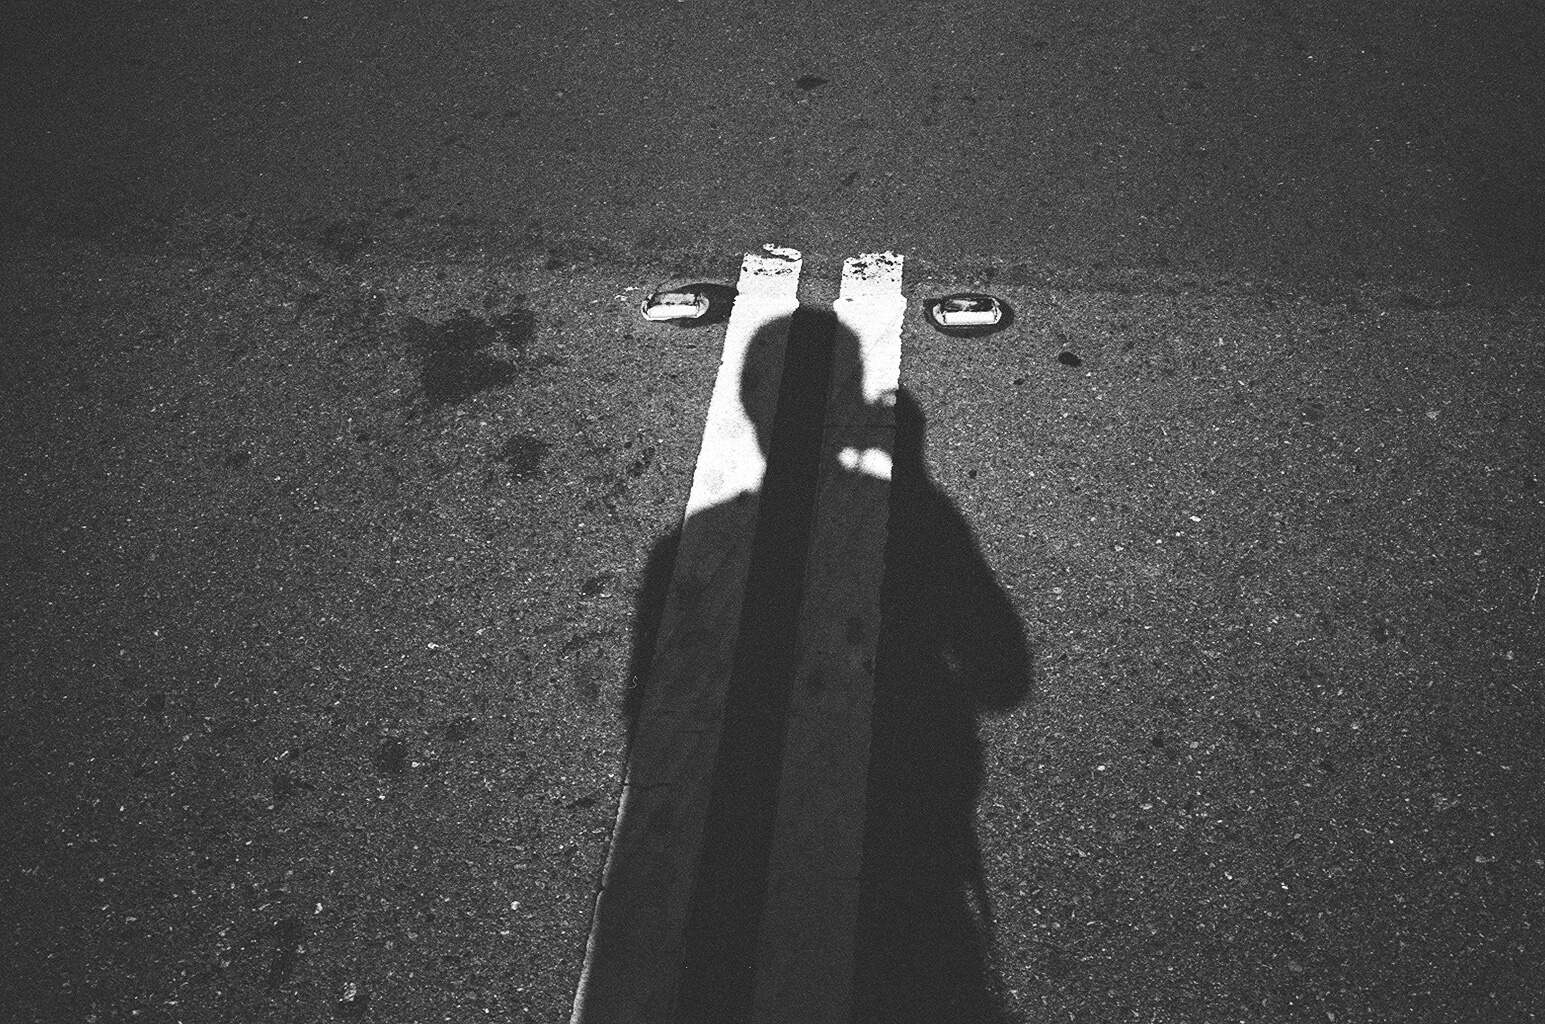 Selfie near my Berkeley apartment. Trix pushed to 1600.